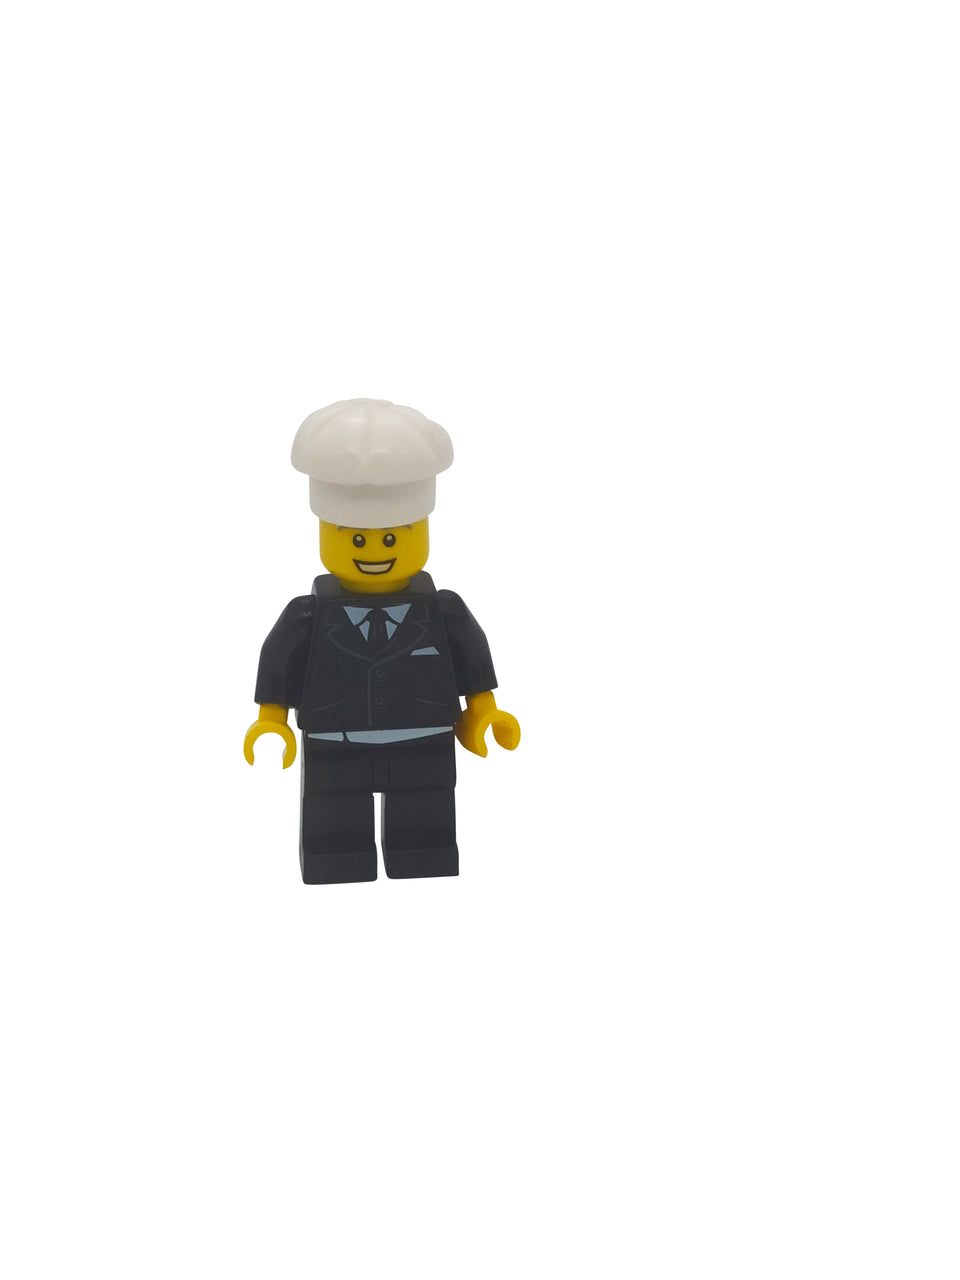 Businessman figure with big white cookie cap - Lego